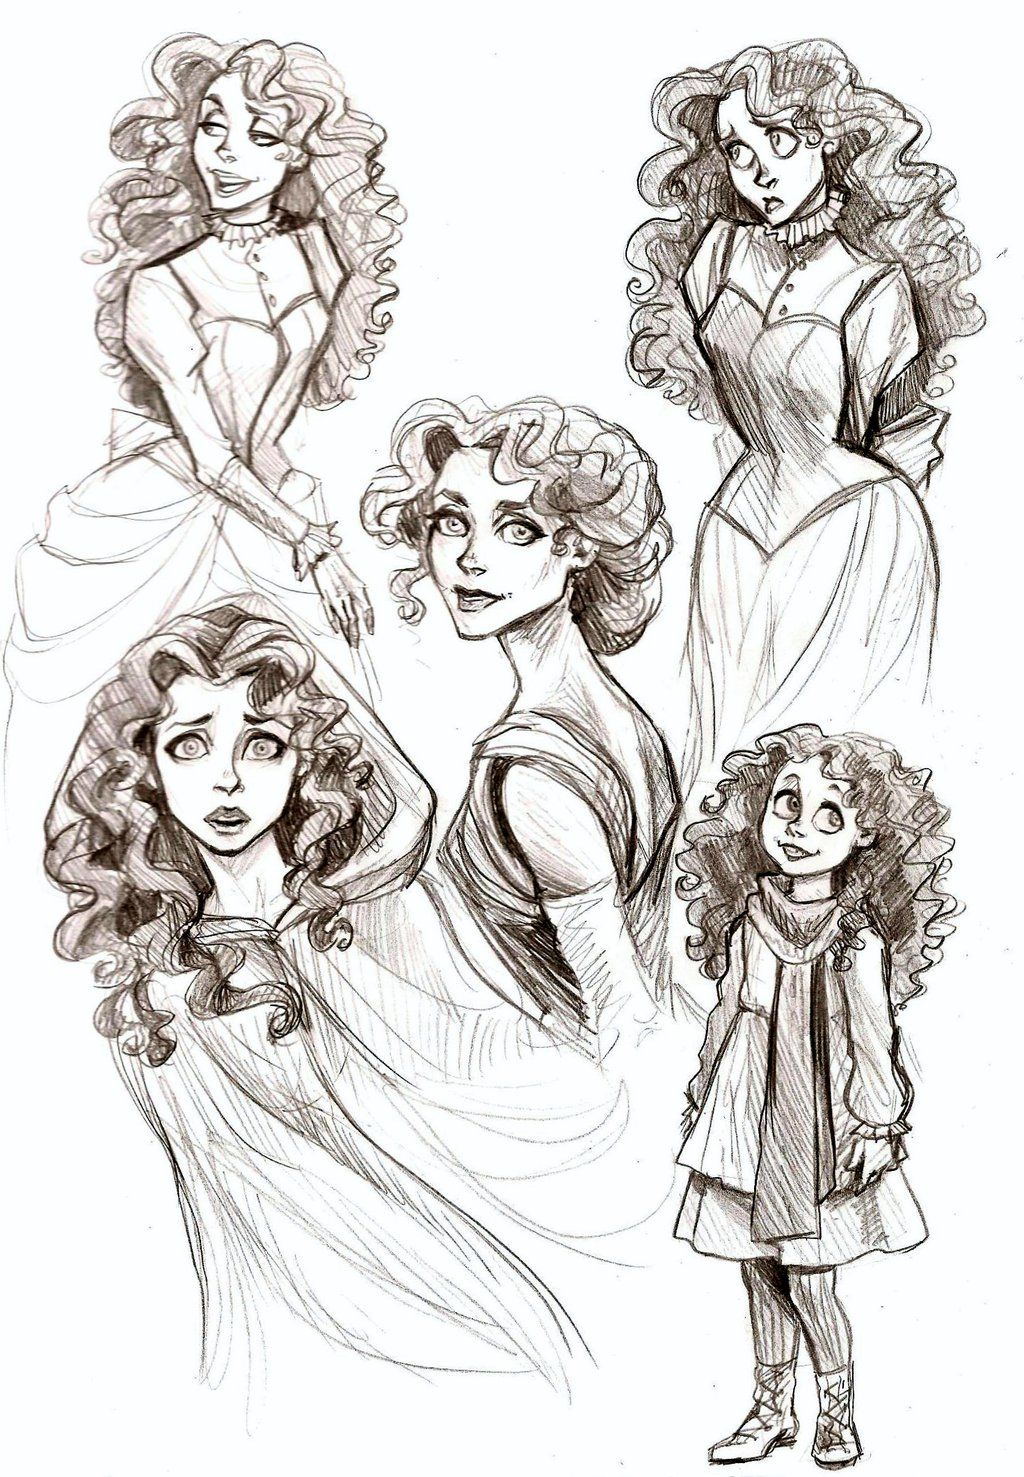 Christines by Muirin007.deviantart.com>>I like this loose, sketchy look.